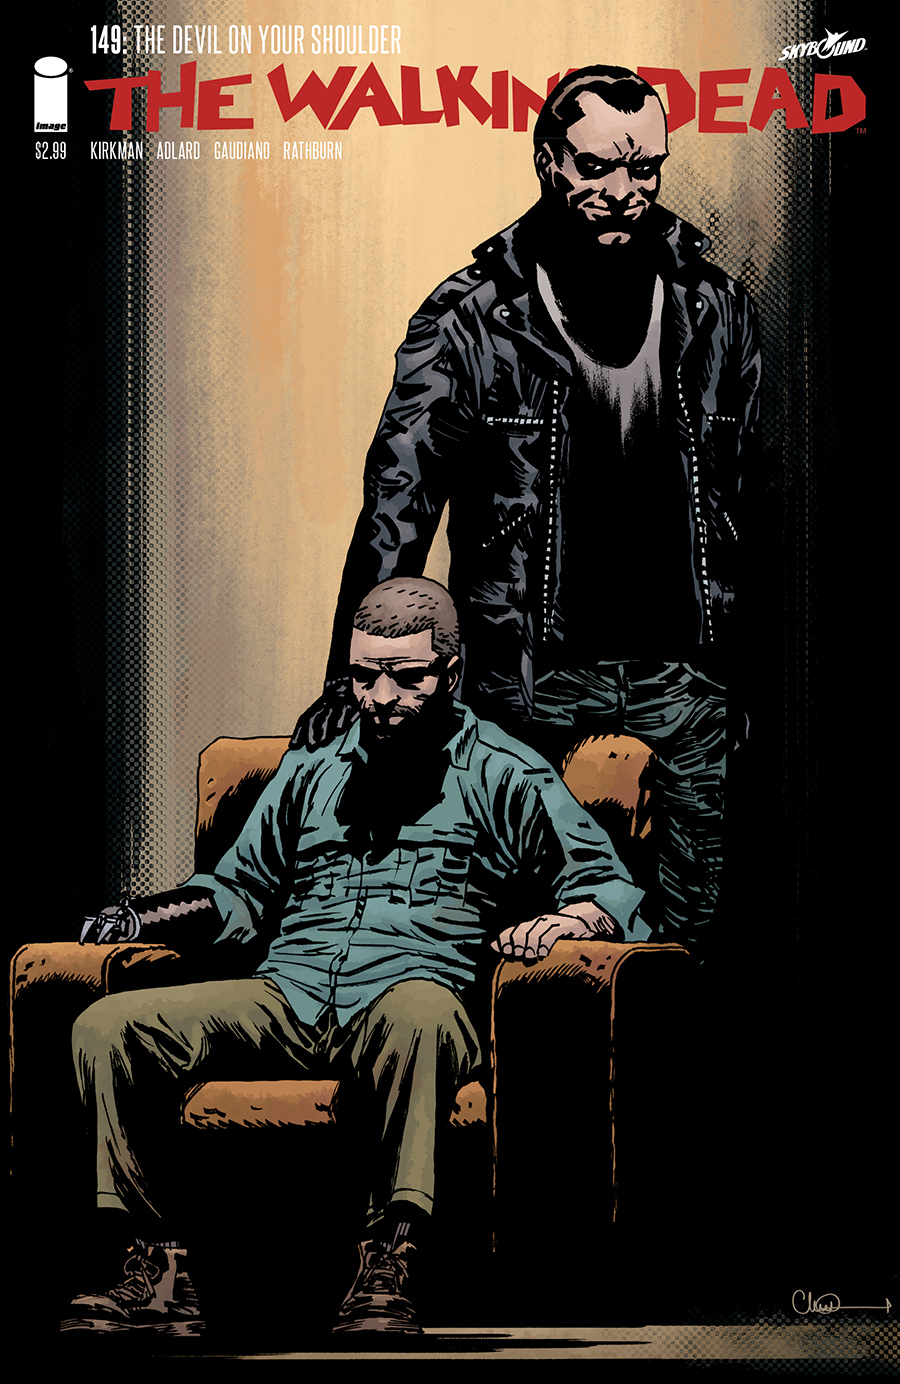 Walking-Dead-149-cover-900